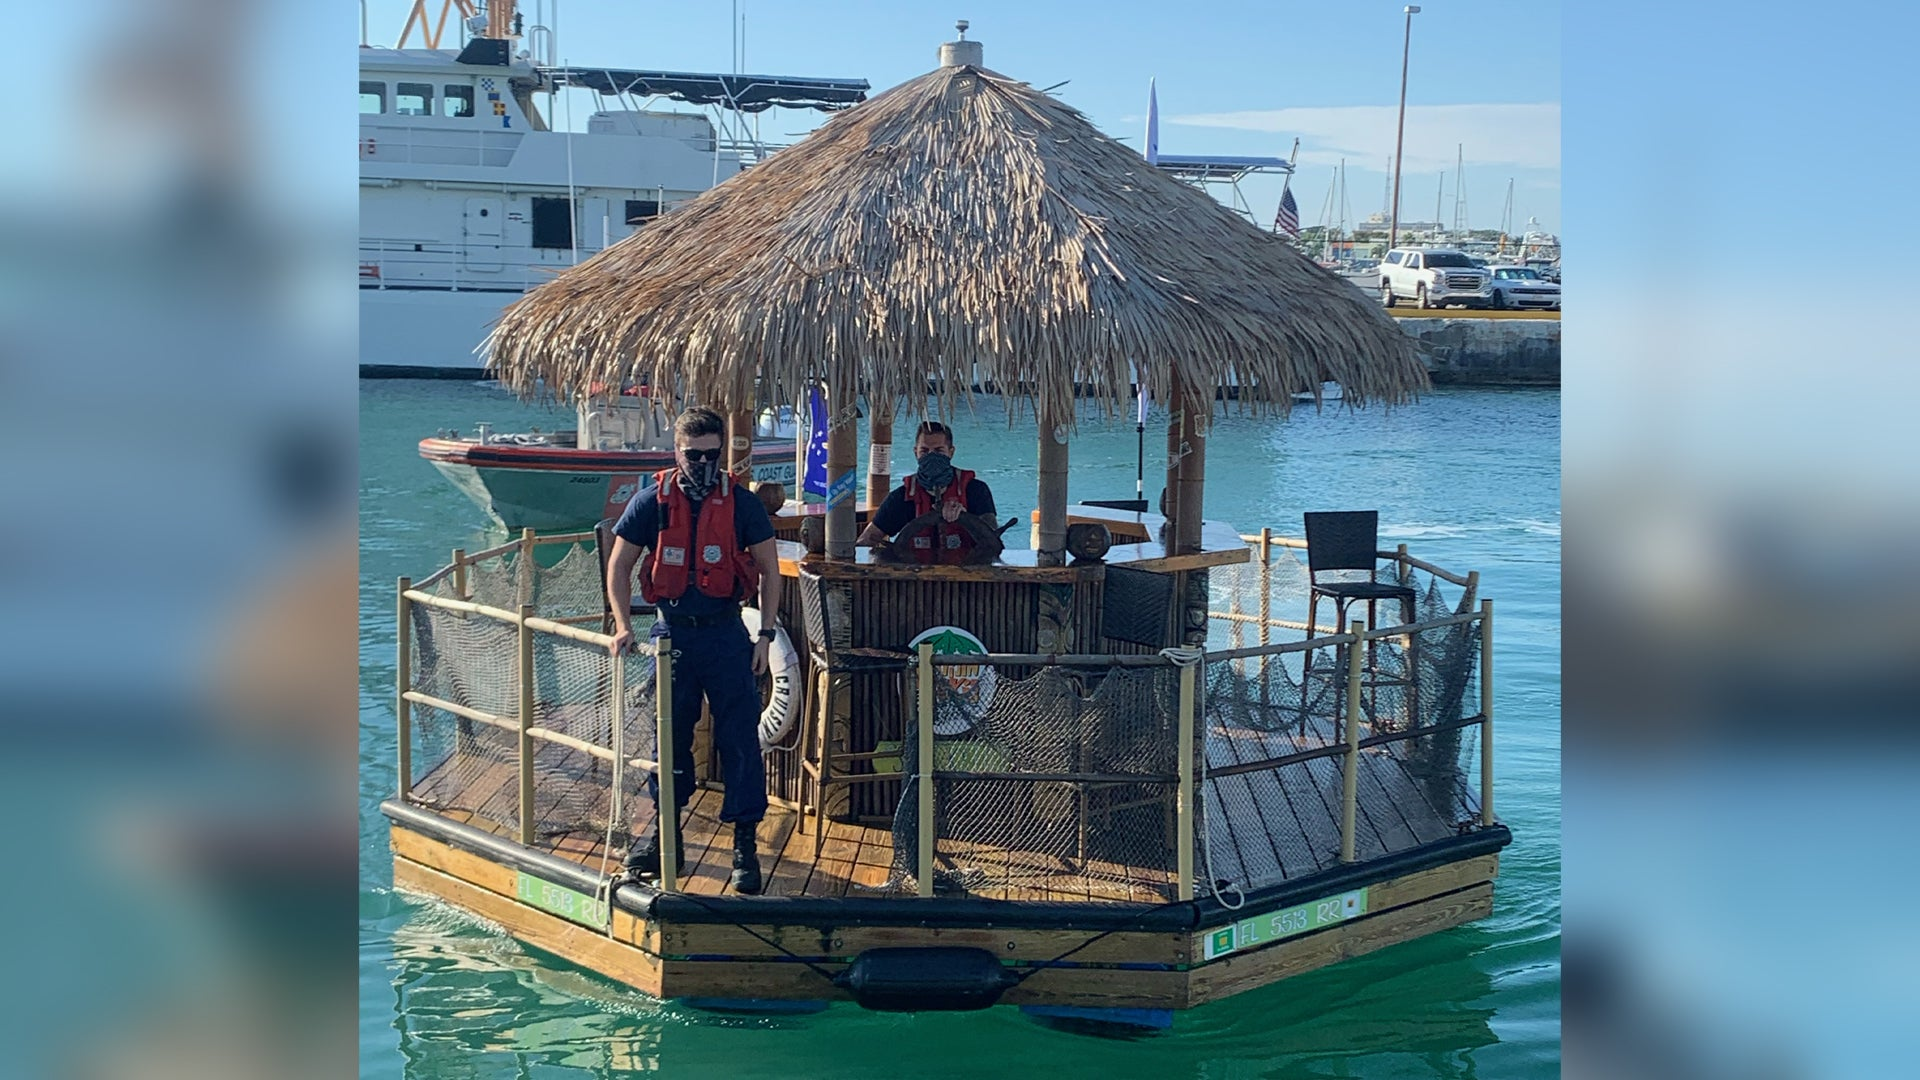 In other news, the Coast Guard has recovered a stolen tiki hut boat